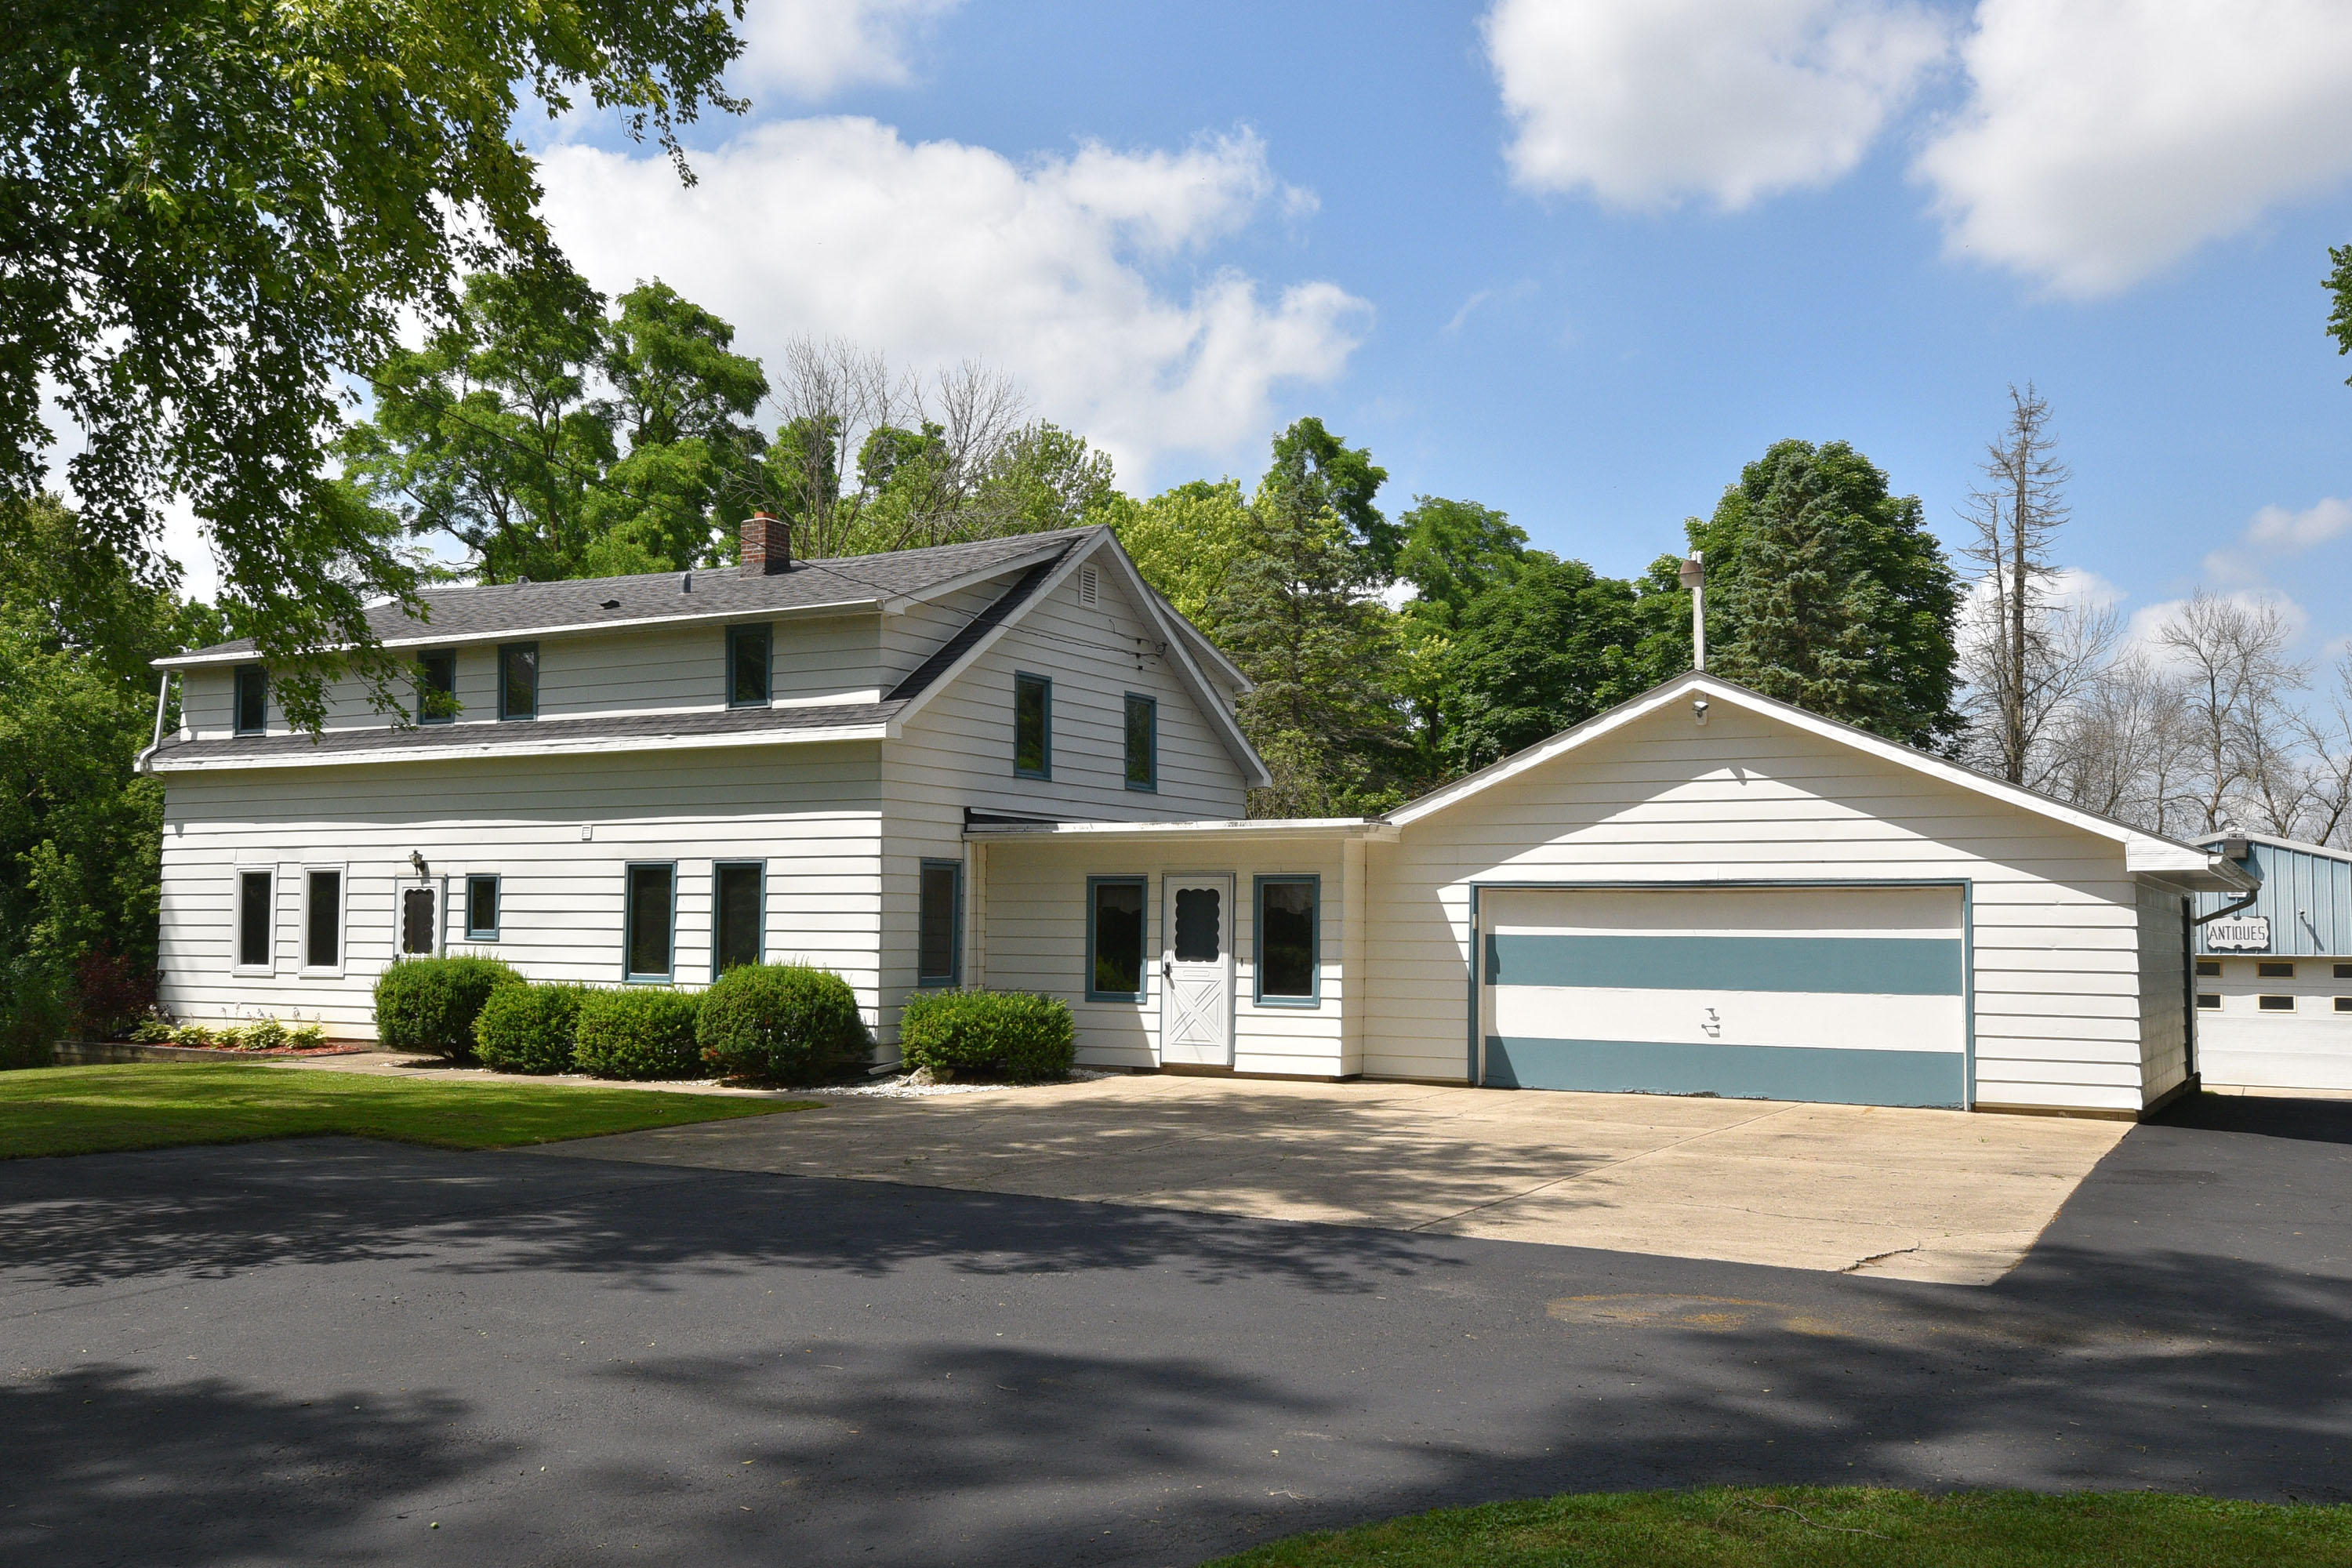 Photo of 10620 W Freistadt Rd, Mequon, WI 53097